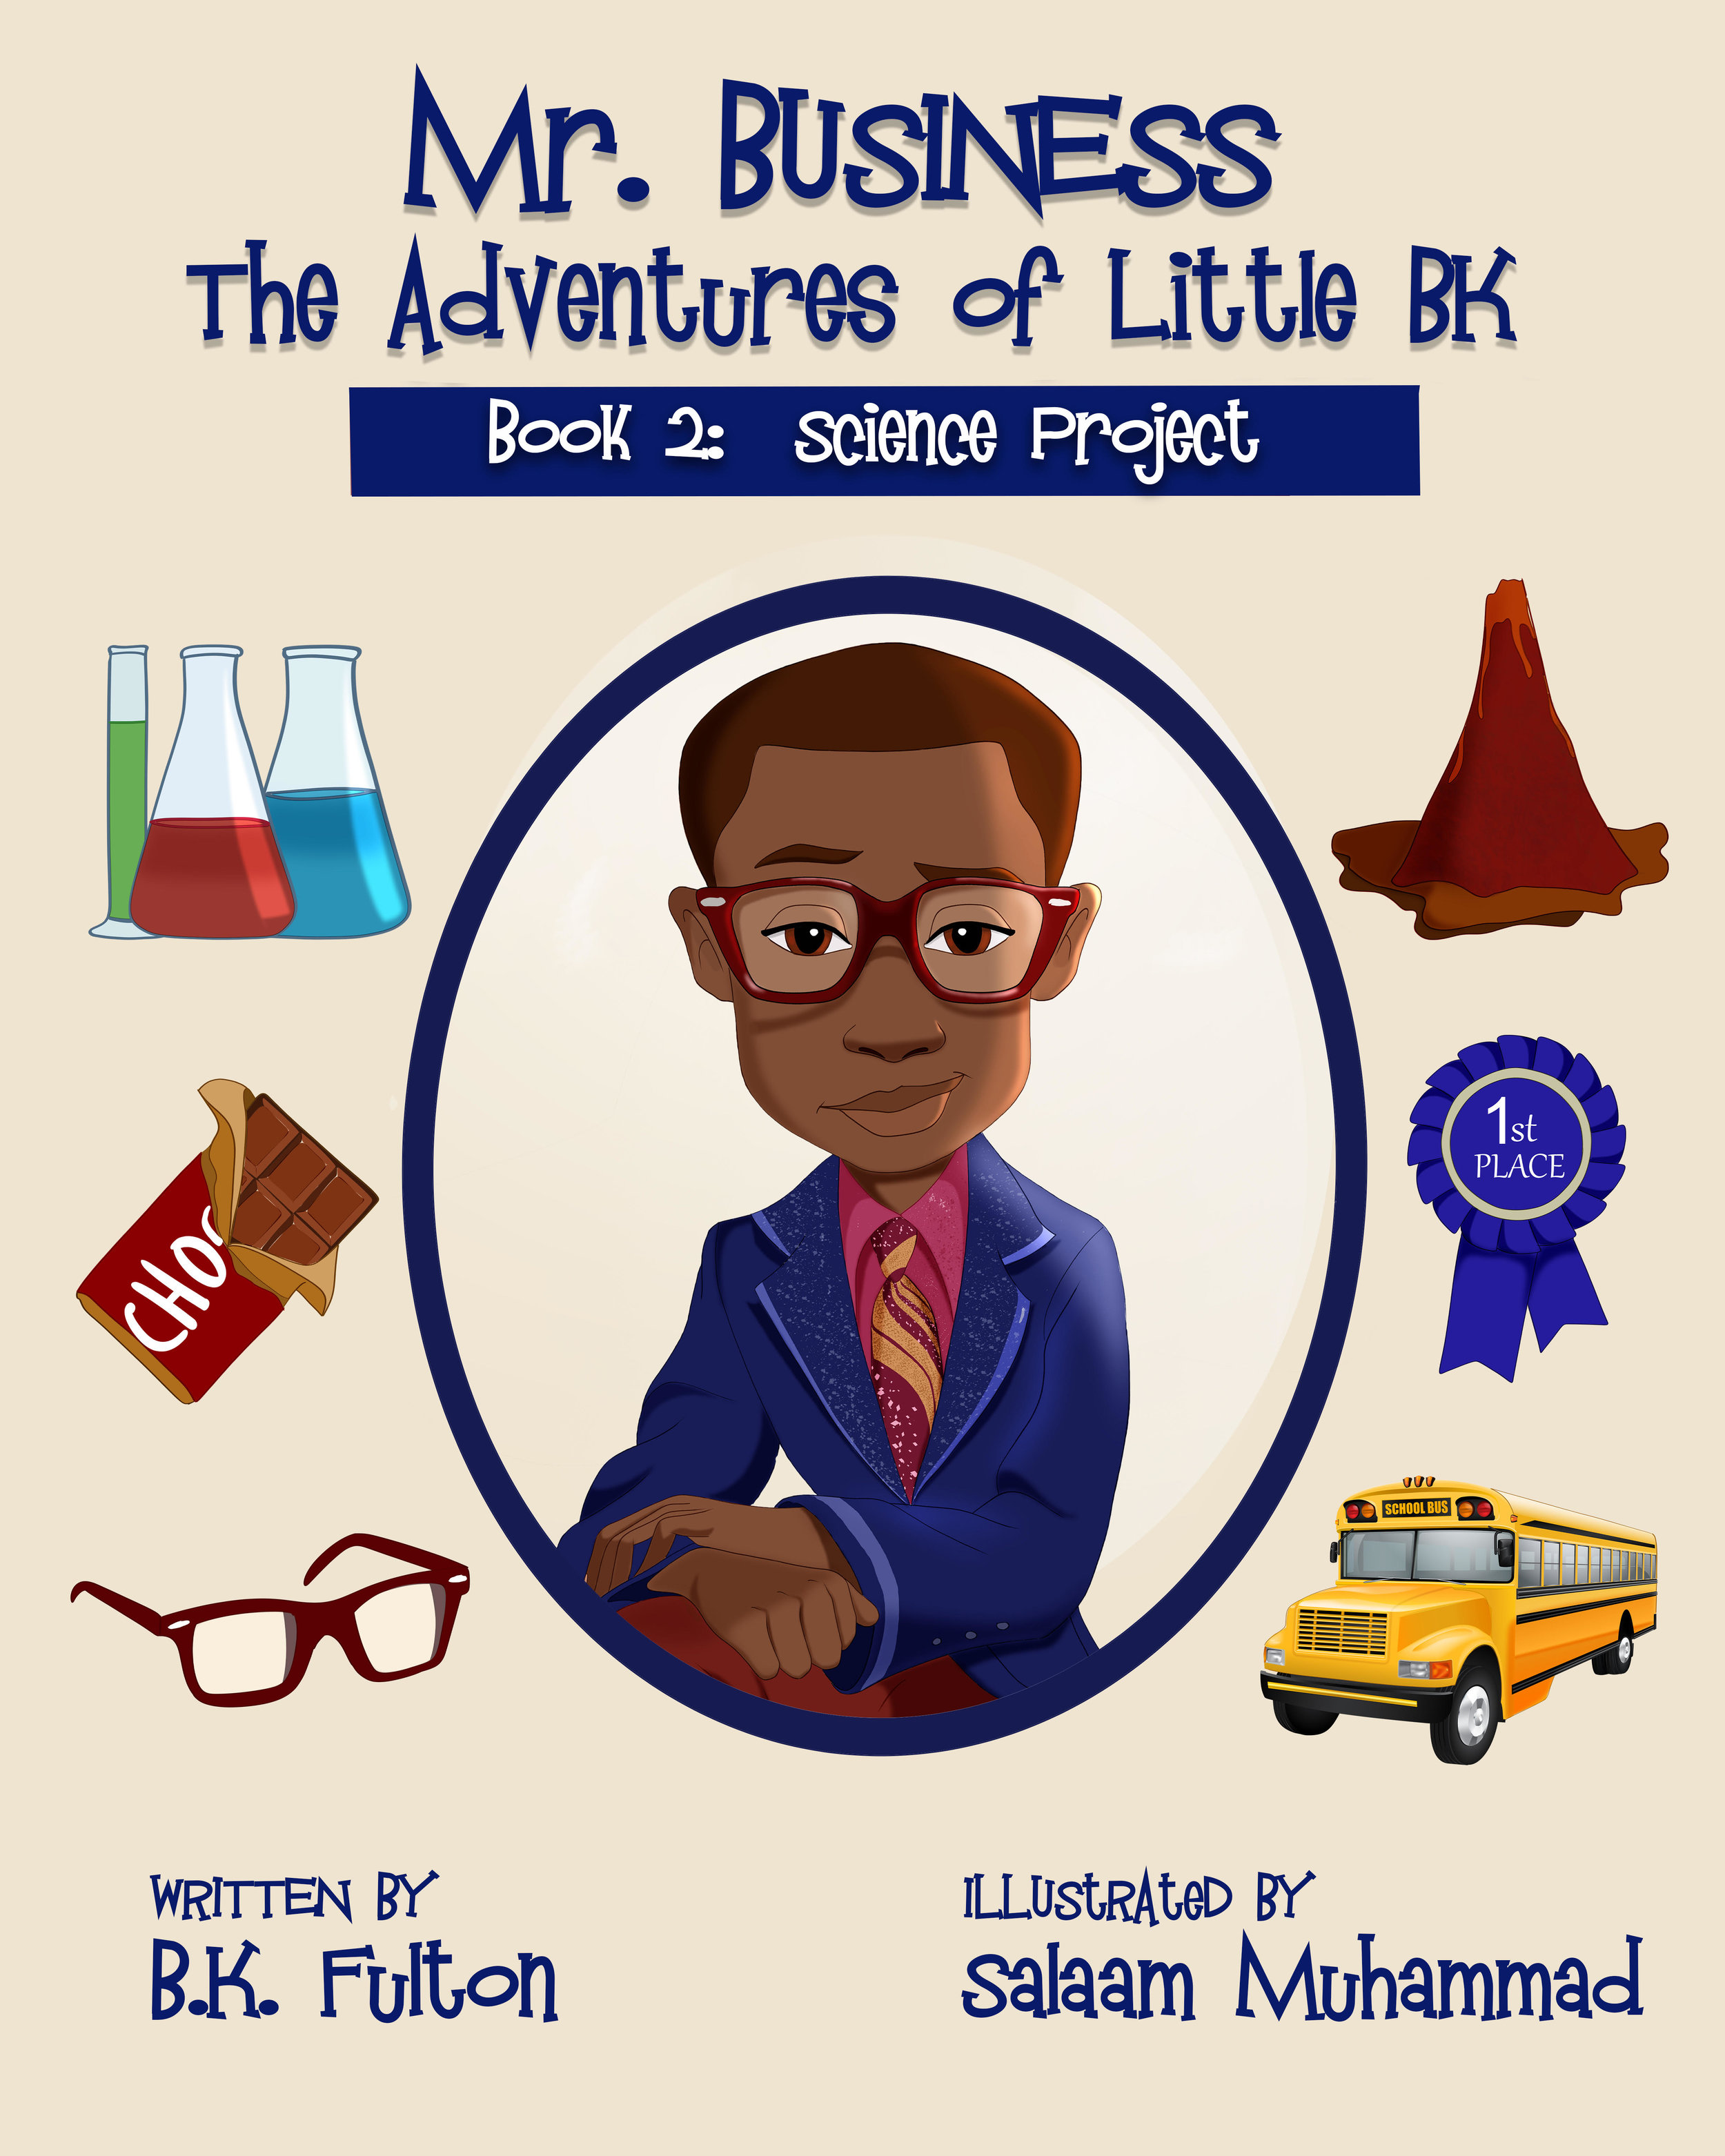 Mr. Business: Book 2 - Written by:BK FultonIllustrated by:Salaam MuhammadSYNOPSISMr. Business is Little BK, a third-grade student on his way to the science fair. But when a classmate says something that surprises him, BK has to figure out what it means to him. Follow BK on his adventures in business and learning about life. Children and parents alike love the values of this dynamic story and how it encourages children to be true to who they are.